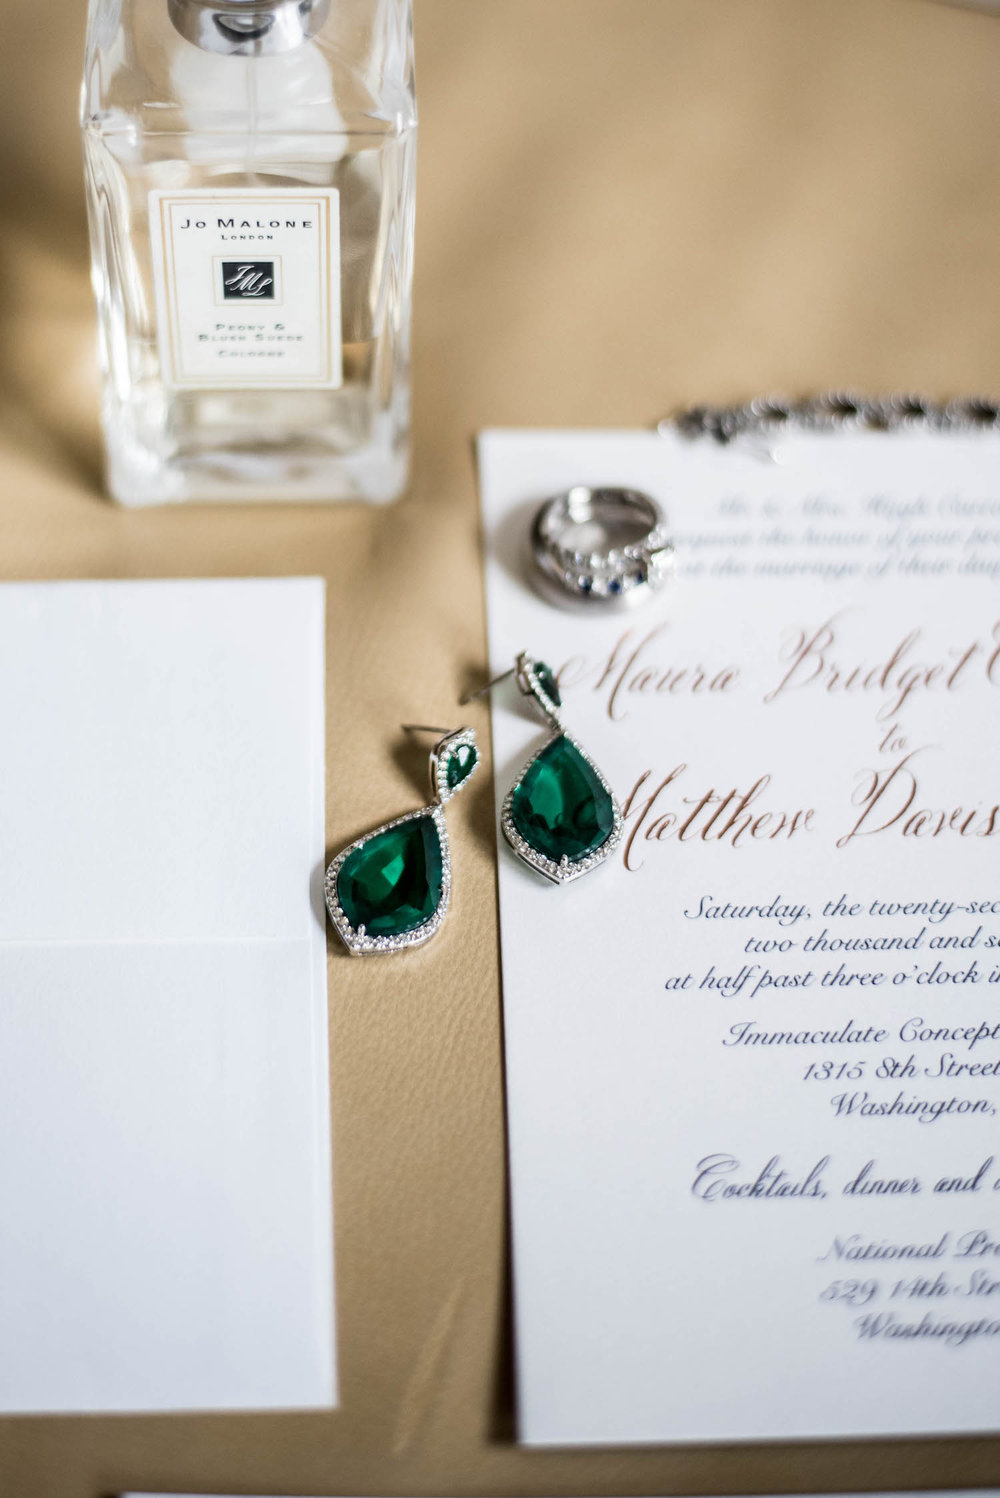 Washington DC Wedding - Sincerely Pete Events - Erin Tetterton Photography - Emerald Earrings